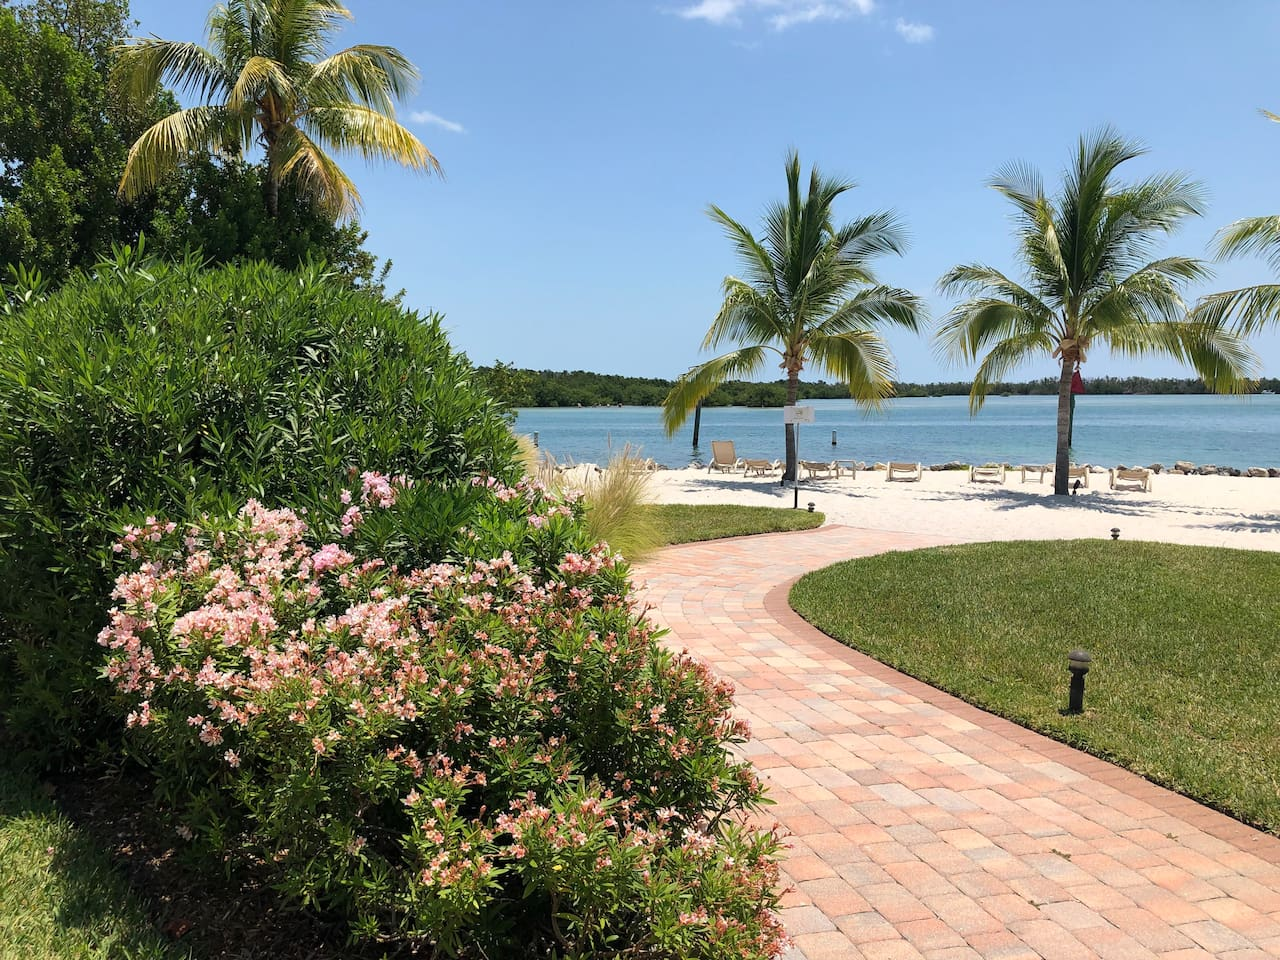 MOST BEAUTIFUL ocean side marina with private, white sand beach and resort amenities (ALL PHOTOS TAKEN MAY 2019)